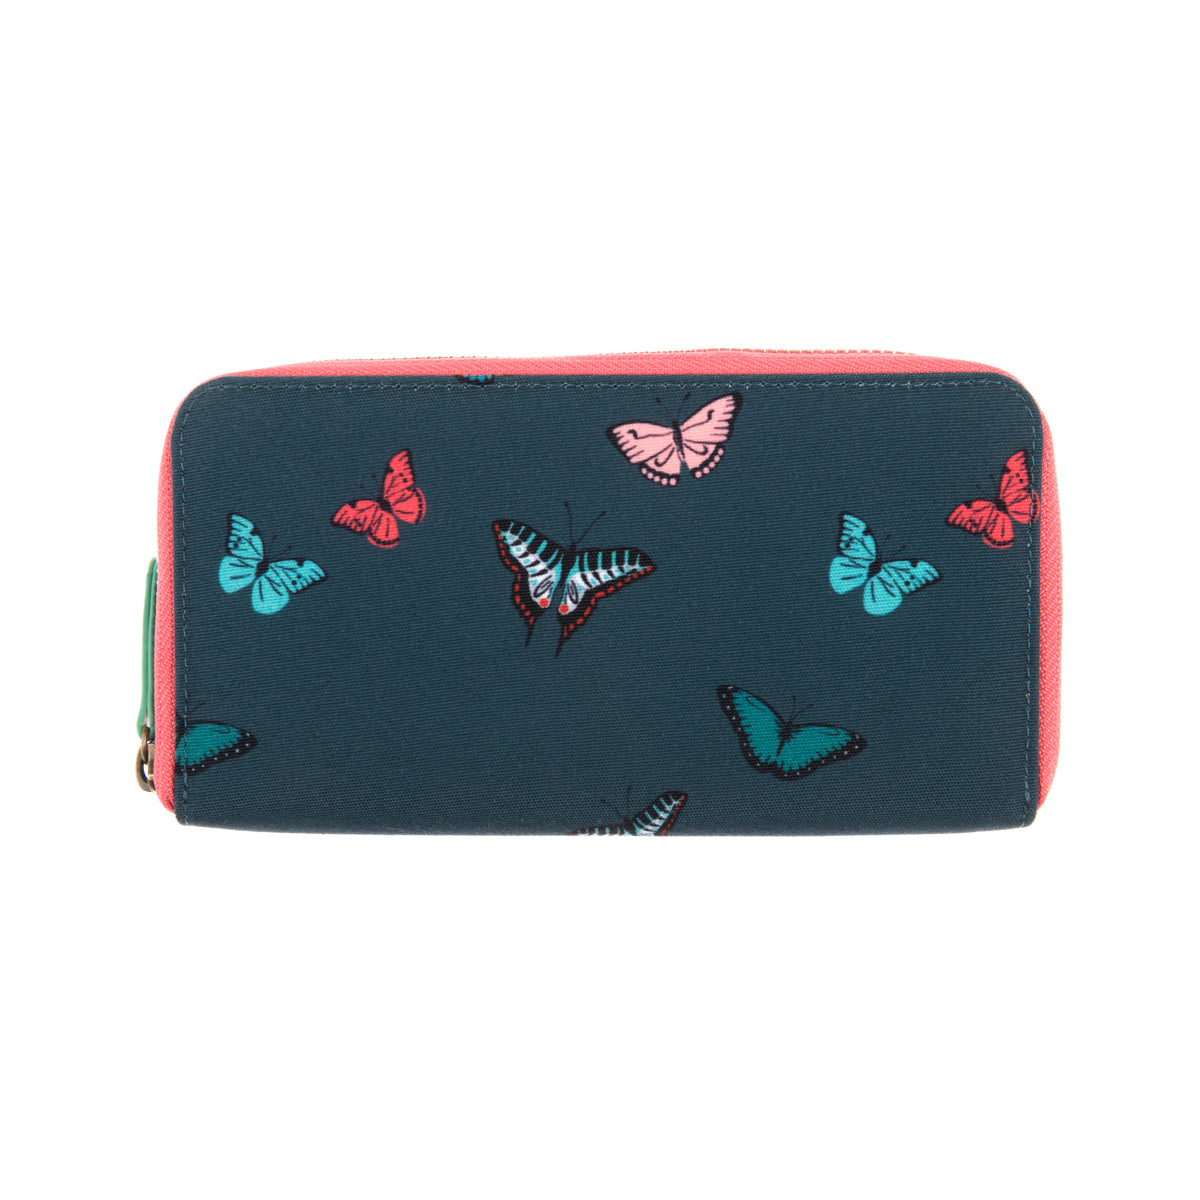 A blue Butterflies Wallet Purse from Sophie Allport.